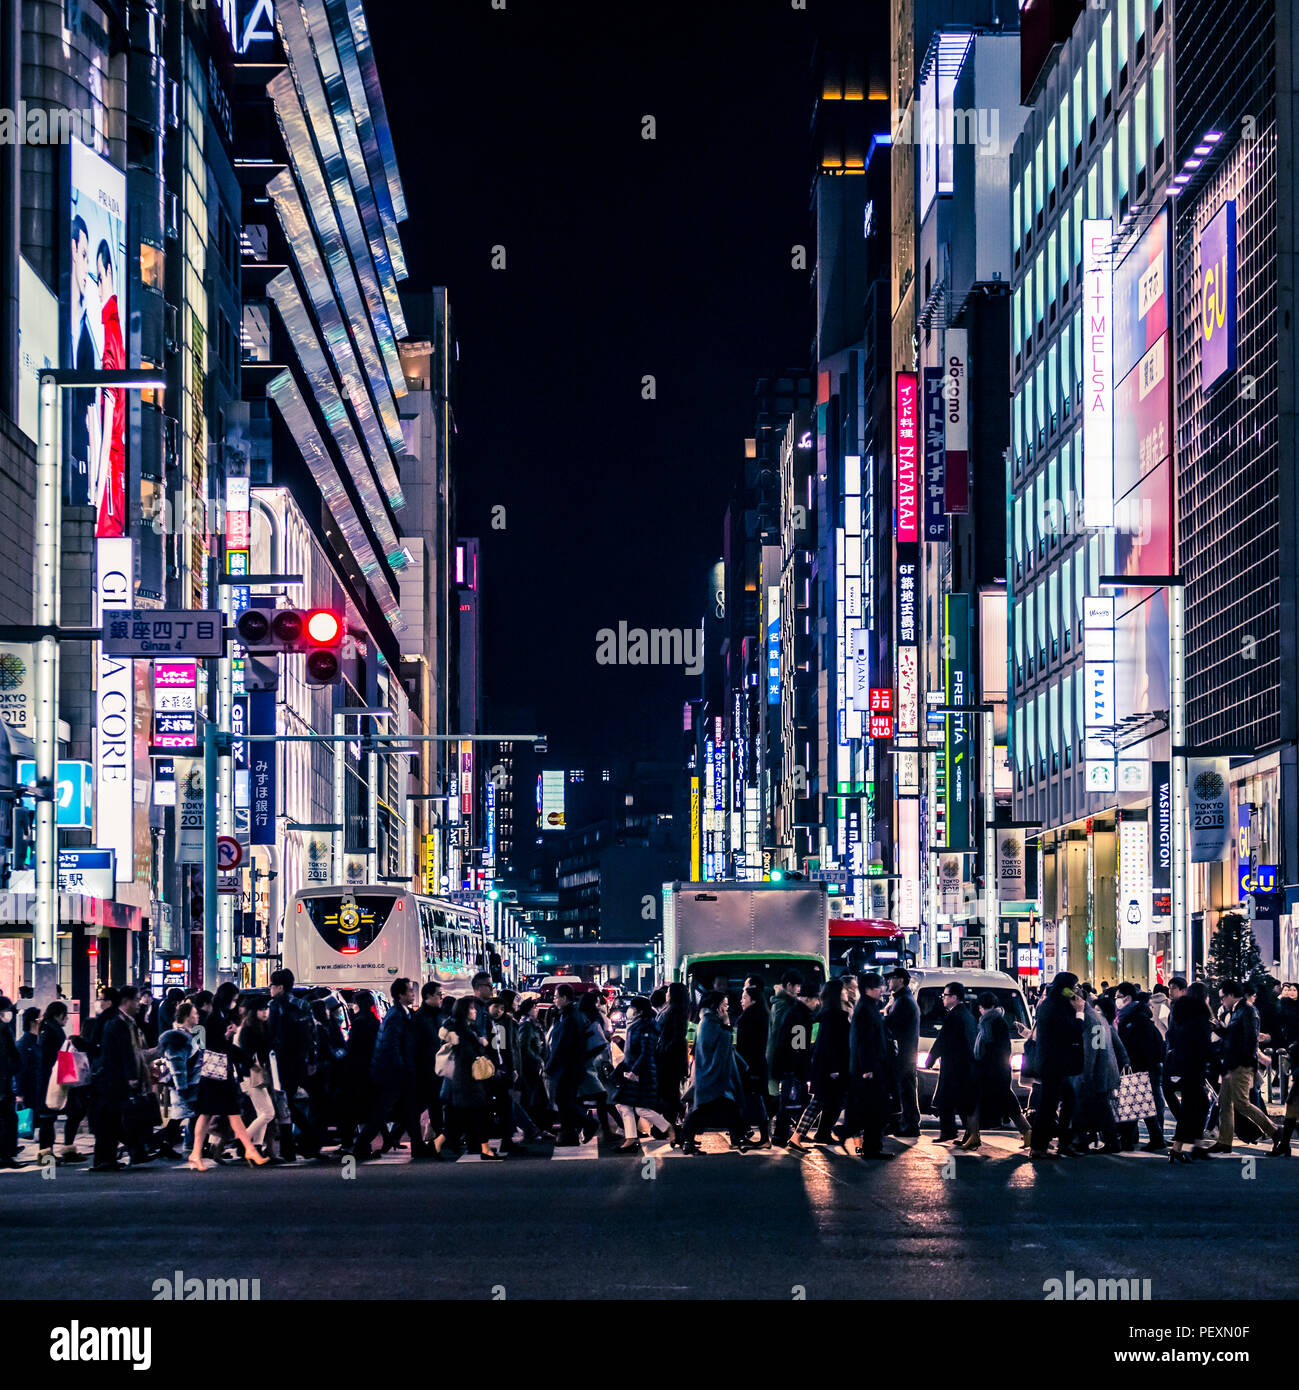 Crowd of people on street in Ginza district, Tokyo, Japan - Stock Image